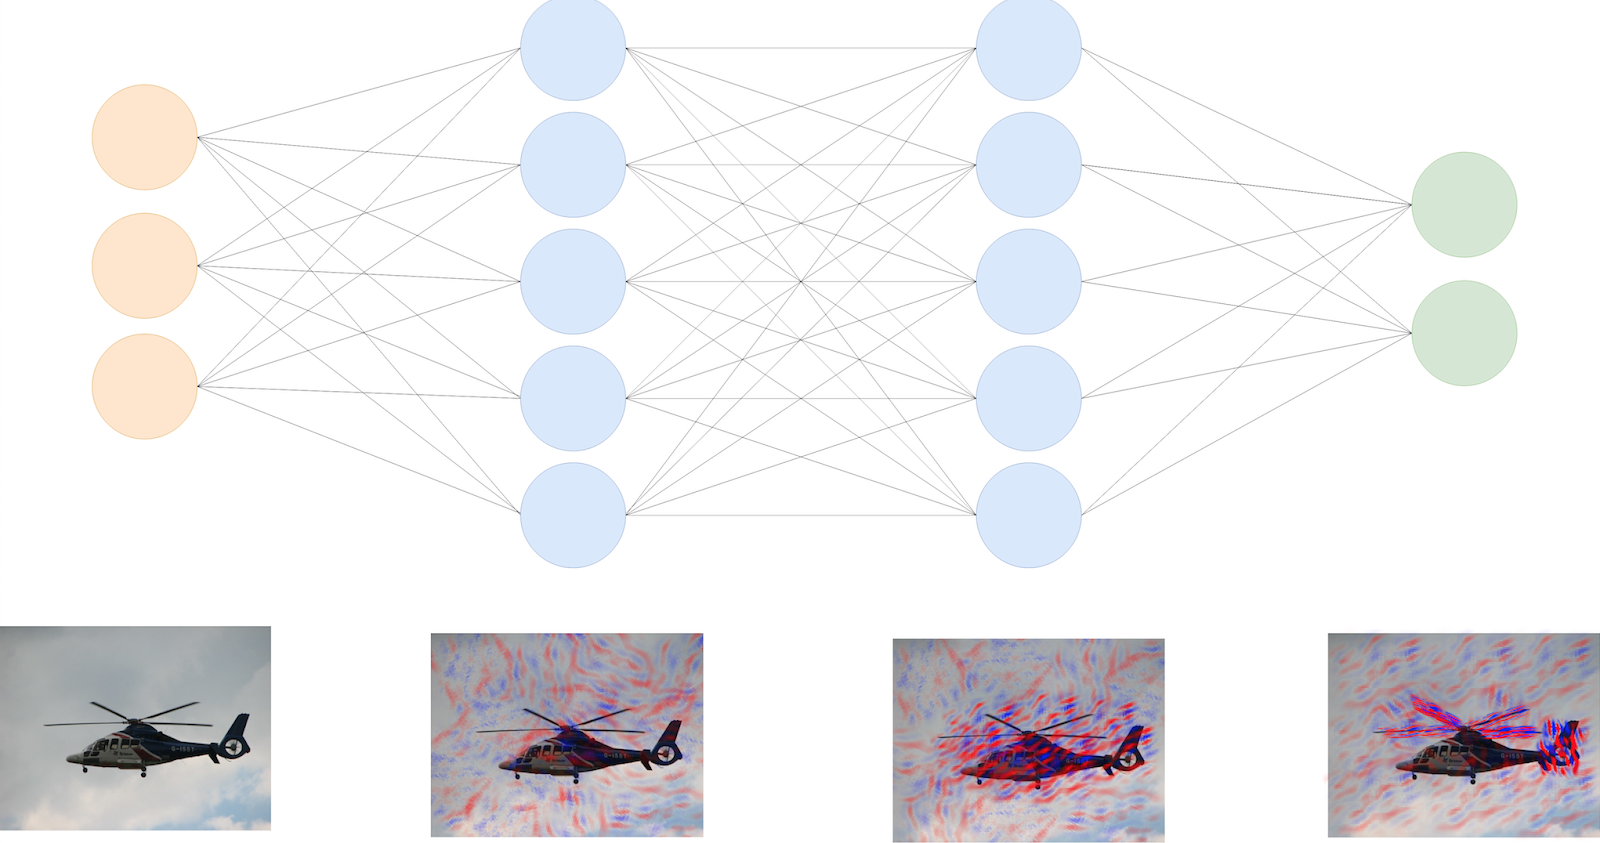 (Fig. 1 - A view of what is discovered at each layer by the neural network)